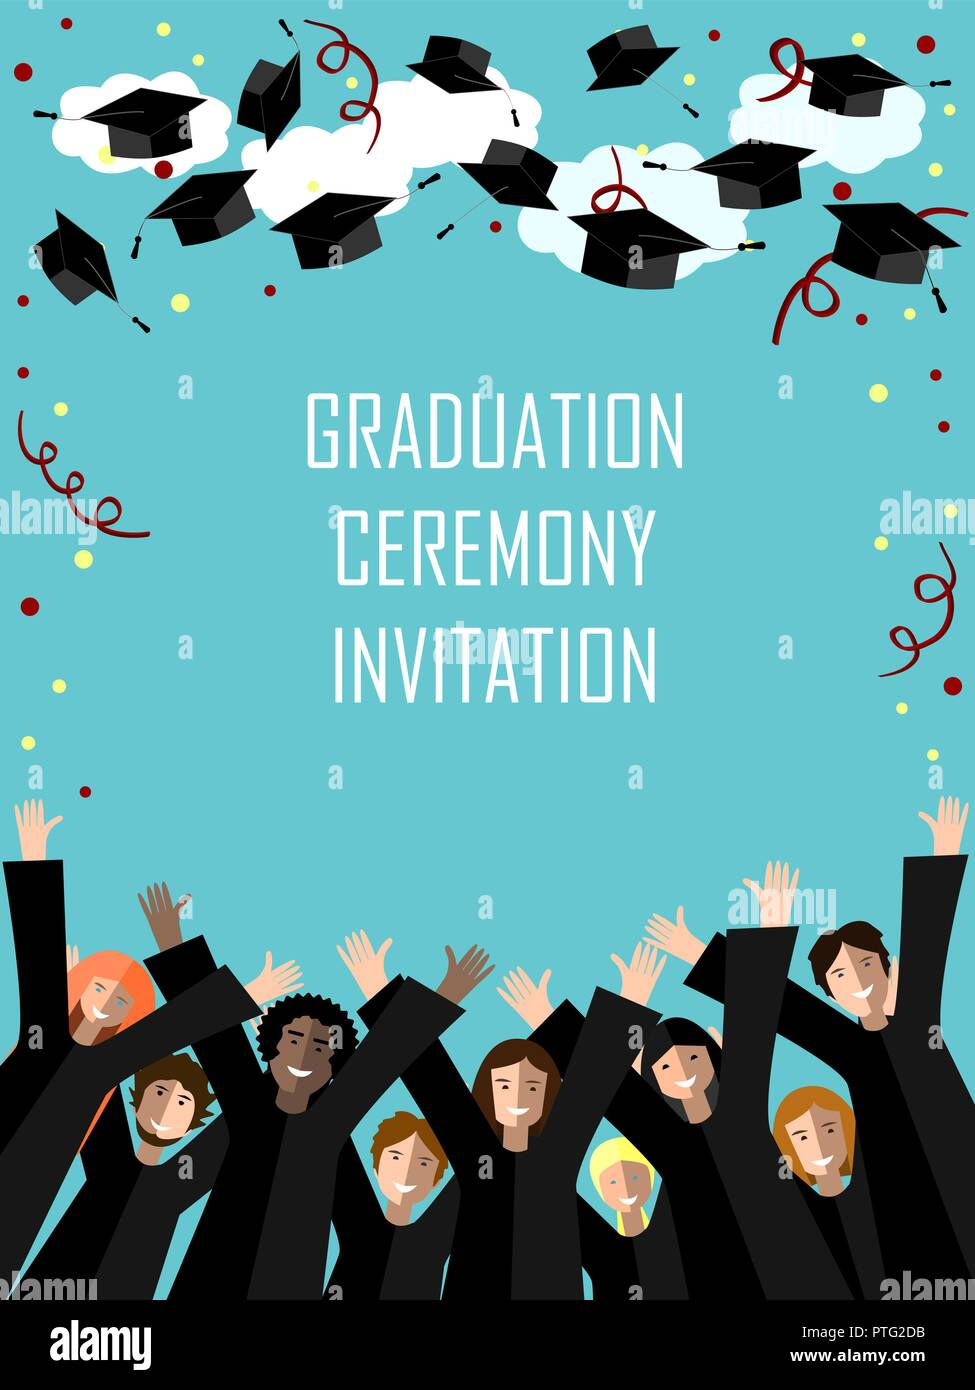 Graduation poster with happy graduates throwing graduation hats in the sky. Vector illustration - Stock Image